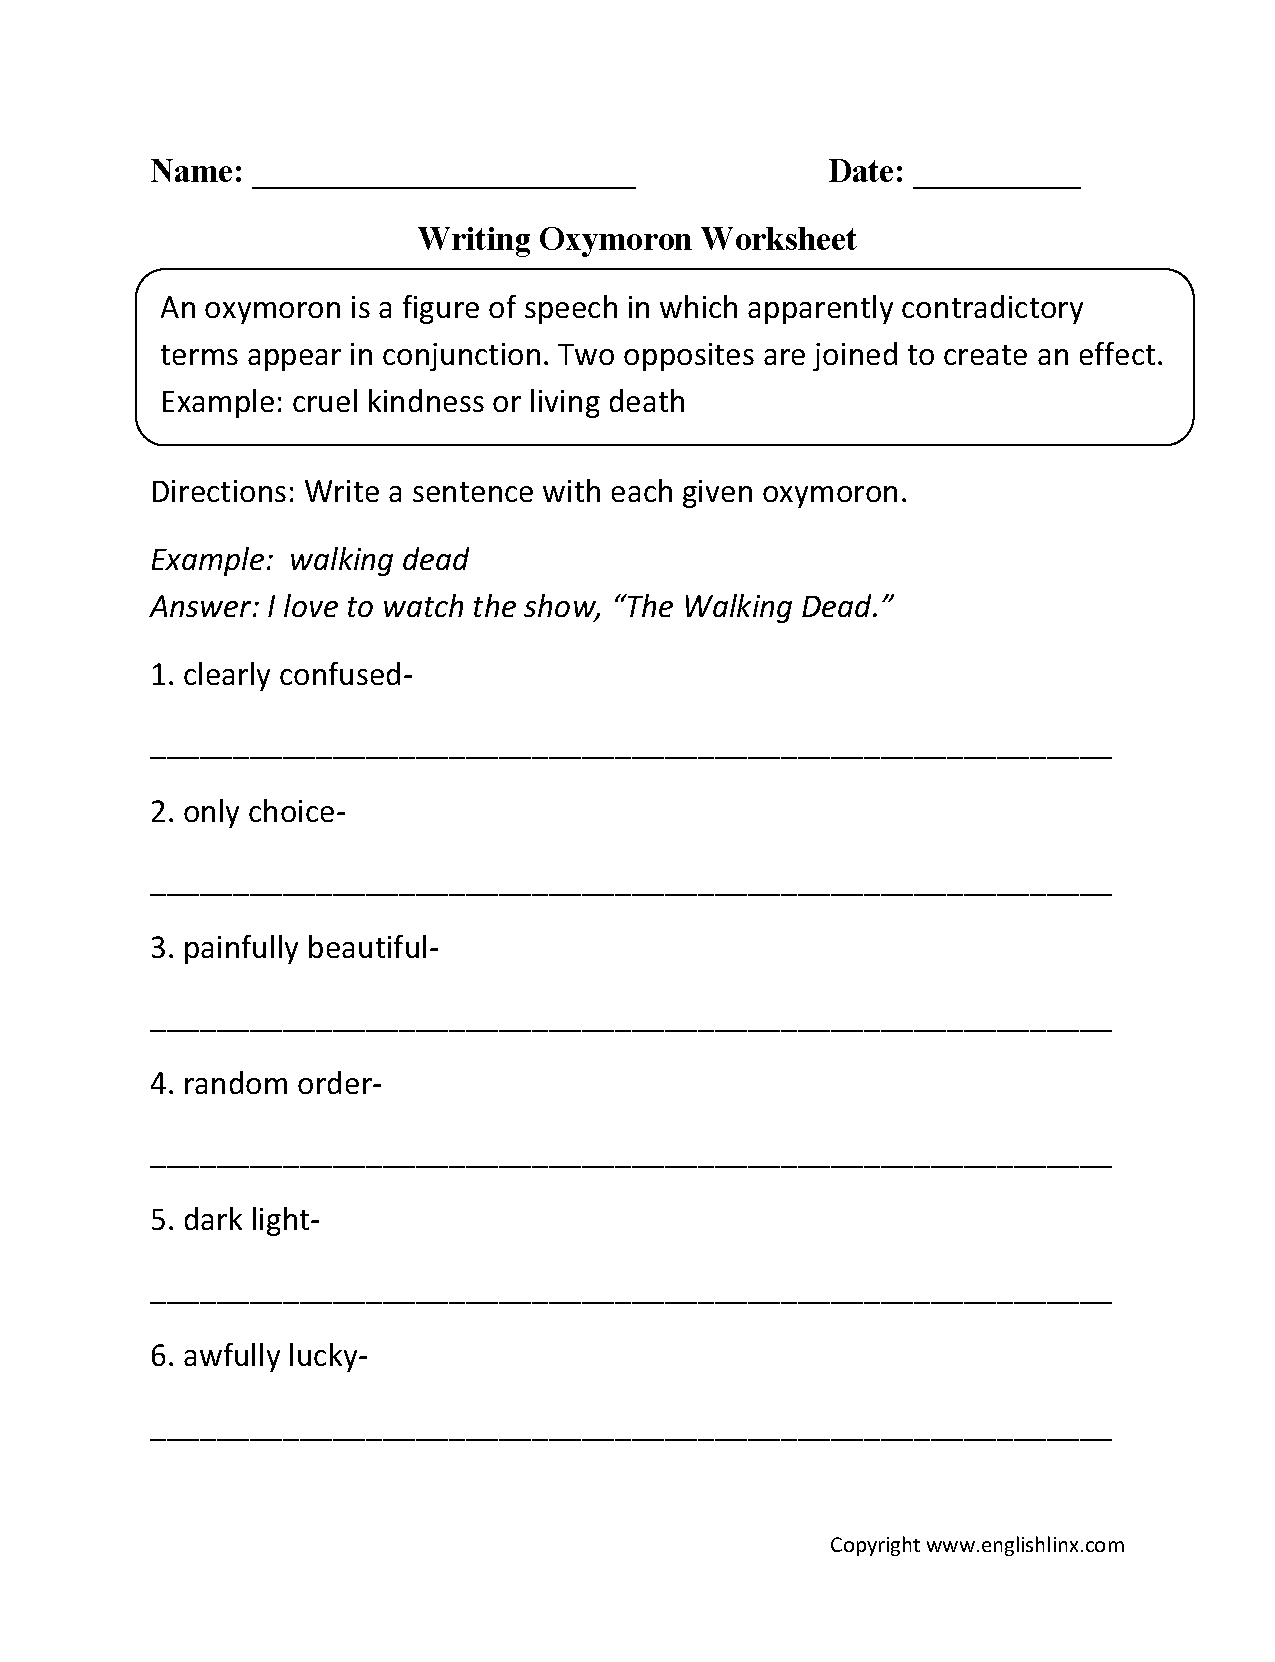 Free Worksheet Denotation And Connotation Worksheets connotation worksheet abitlikethis denotation and free printable math worksheets